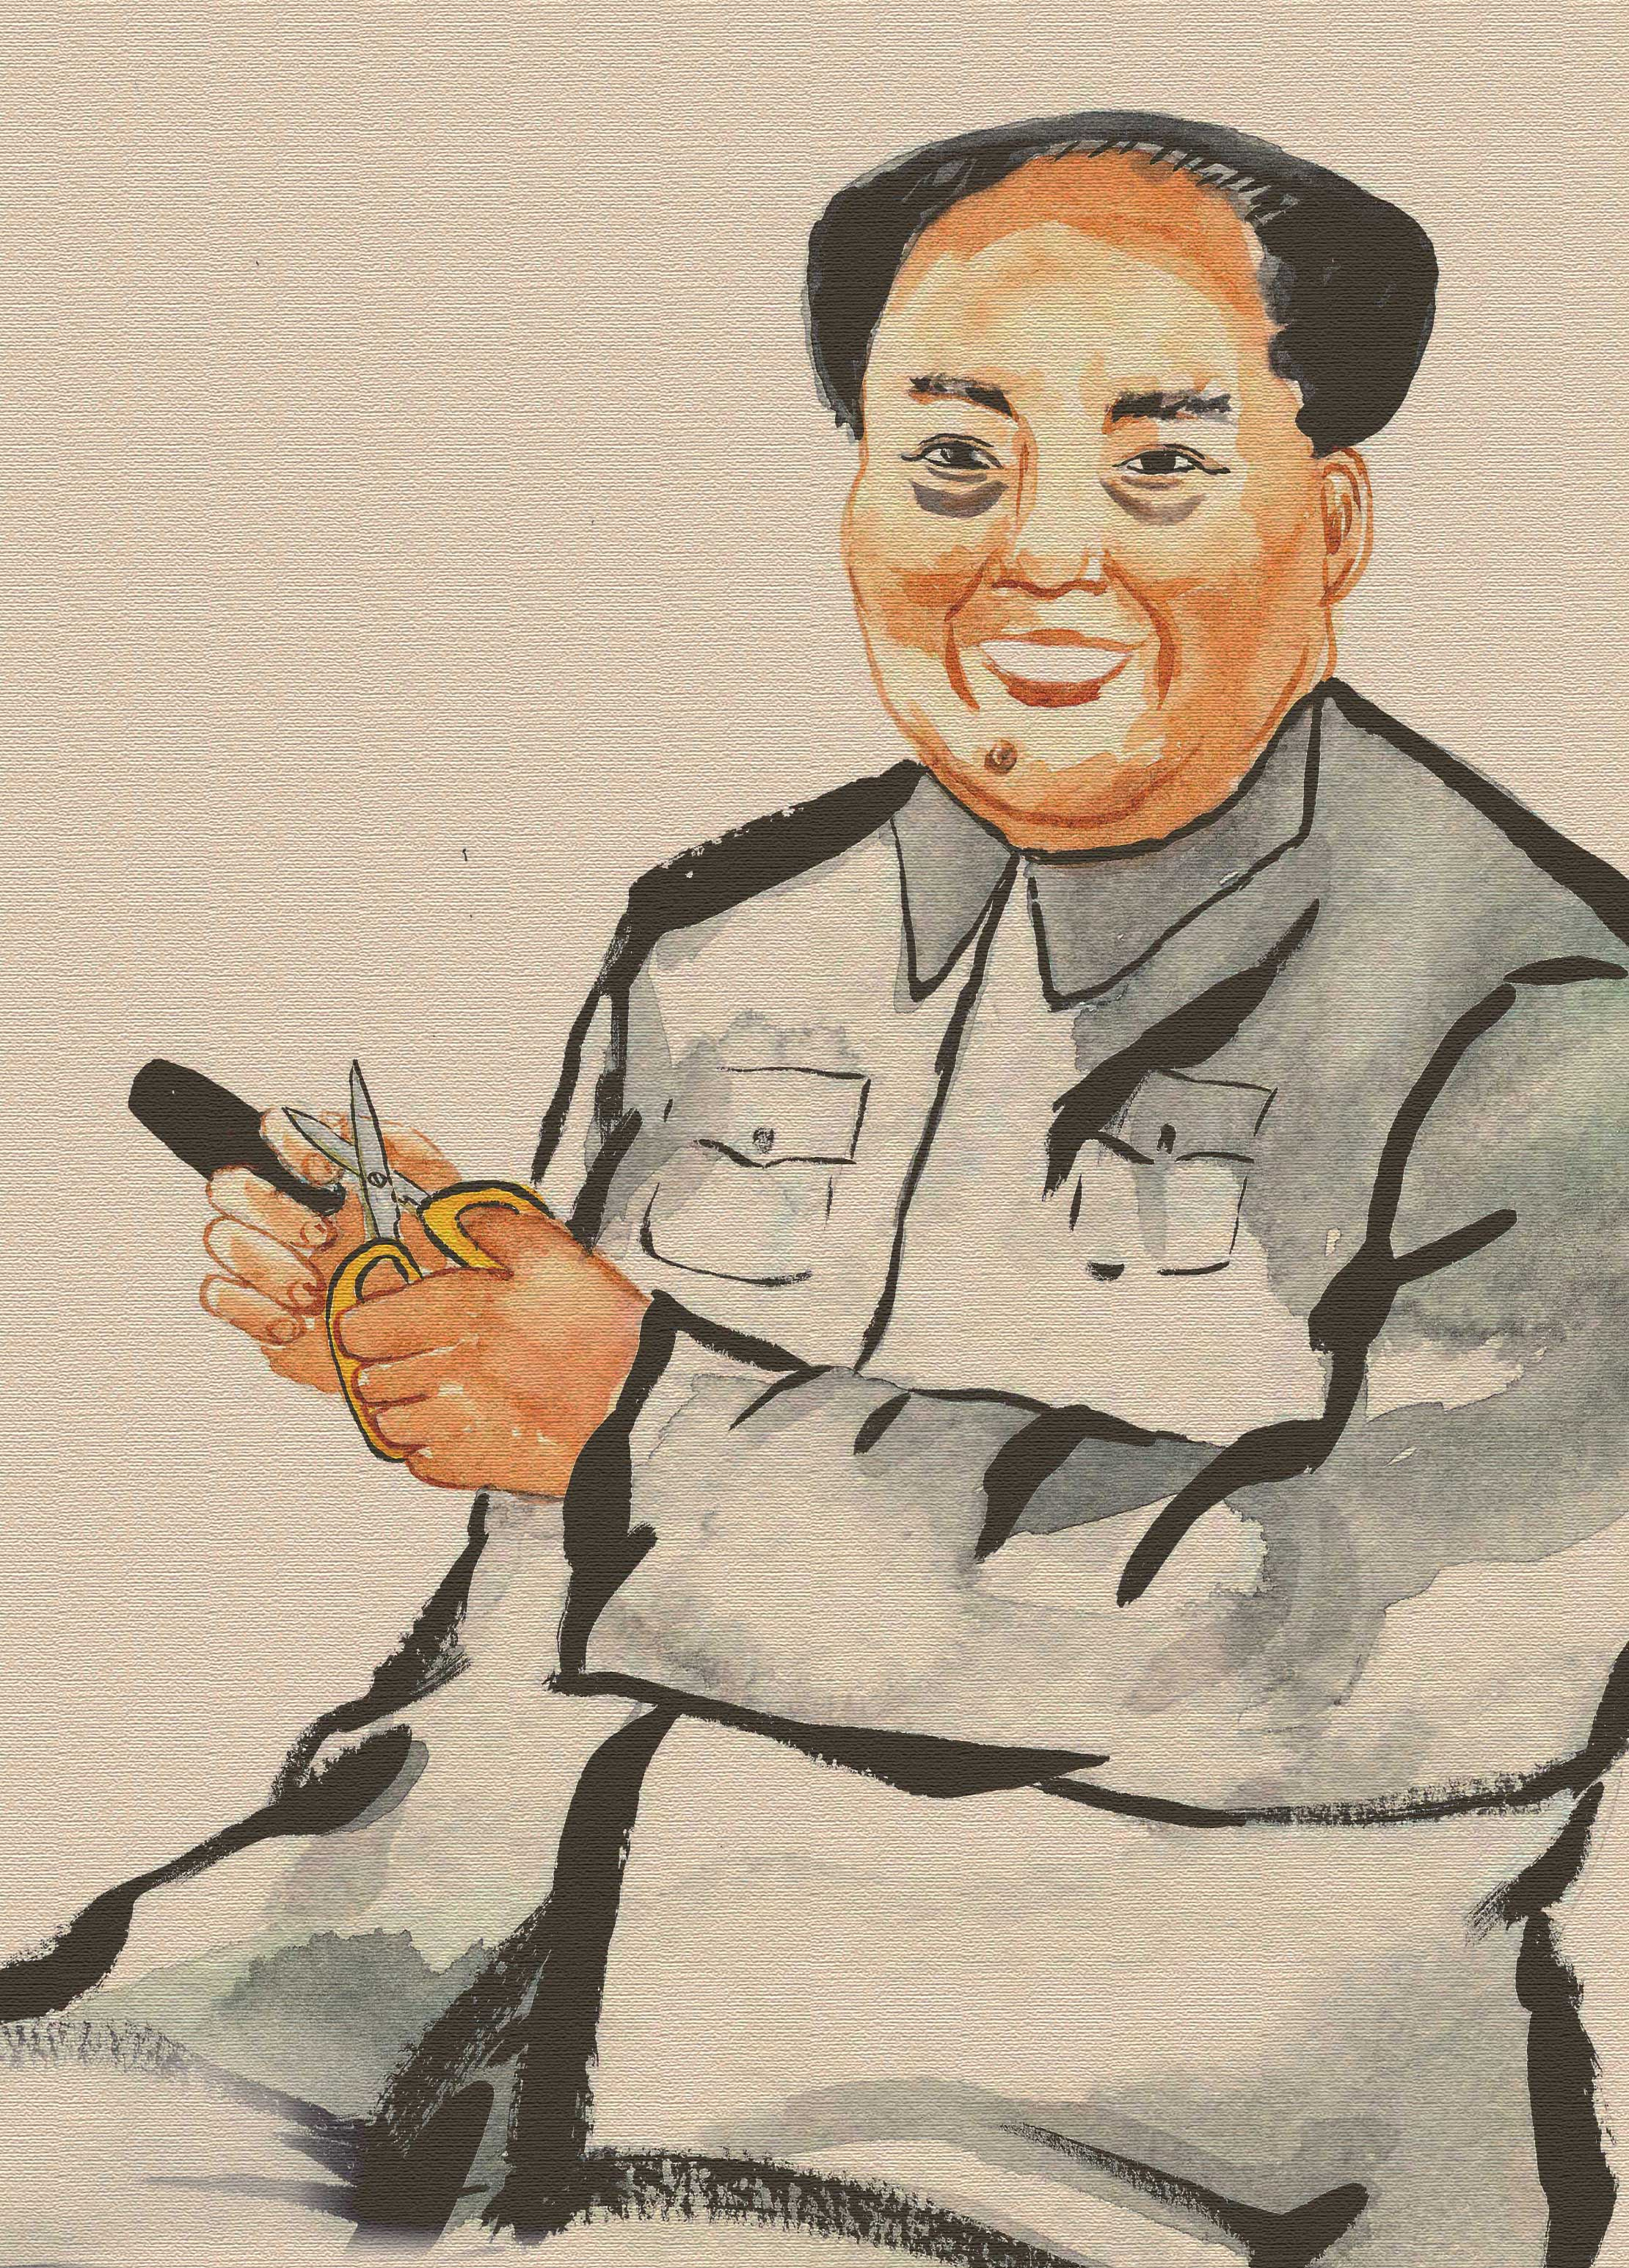 A Happy Mao with his cigar